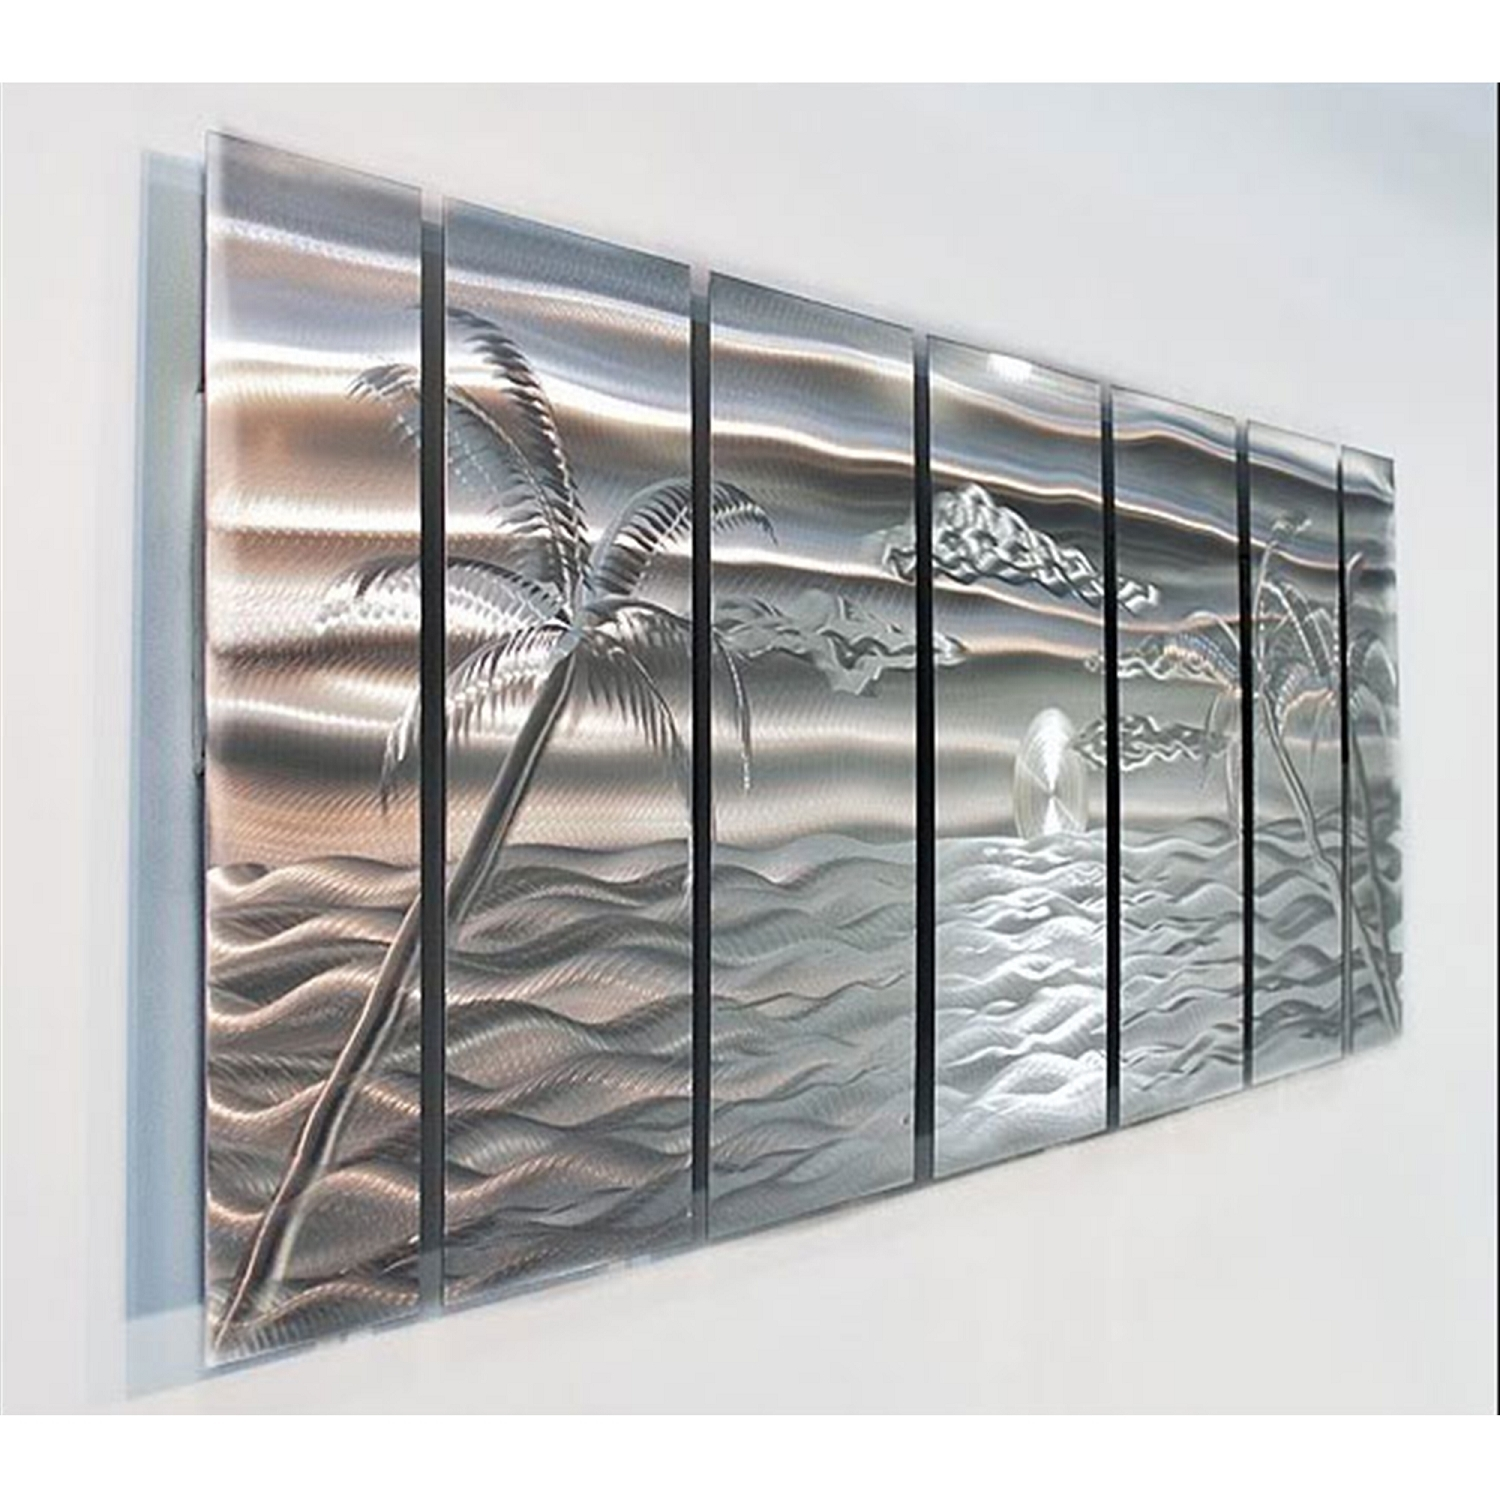 Classy 10+ Abstract Metal Wall Art Design Inspiration Of Best 25+ With Regard To Recent Abstract Nautical Wall Art (View 16 of 20)